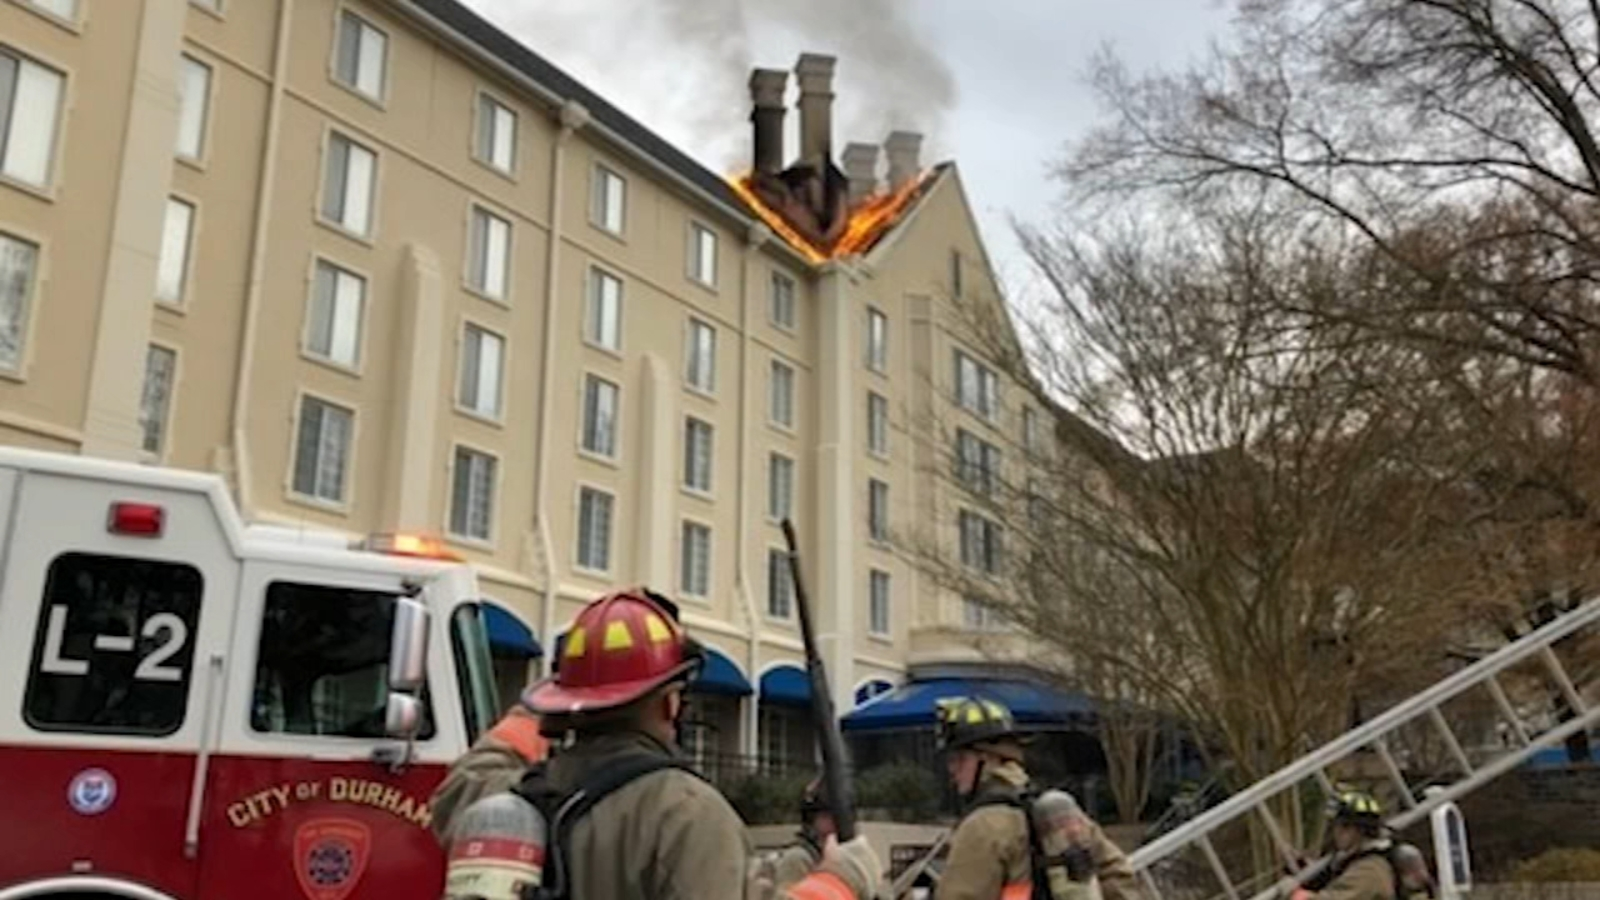 Fire causes heavy damage to roof at Washington Duke Inn